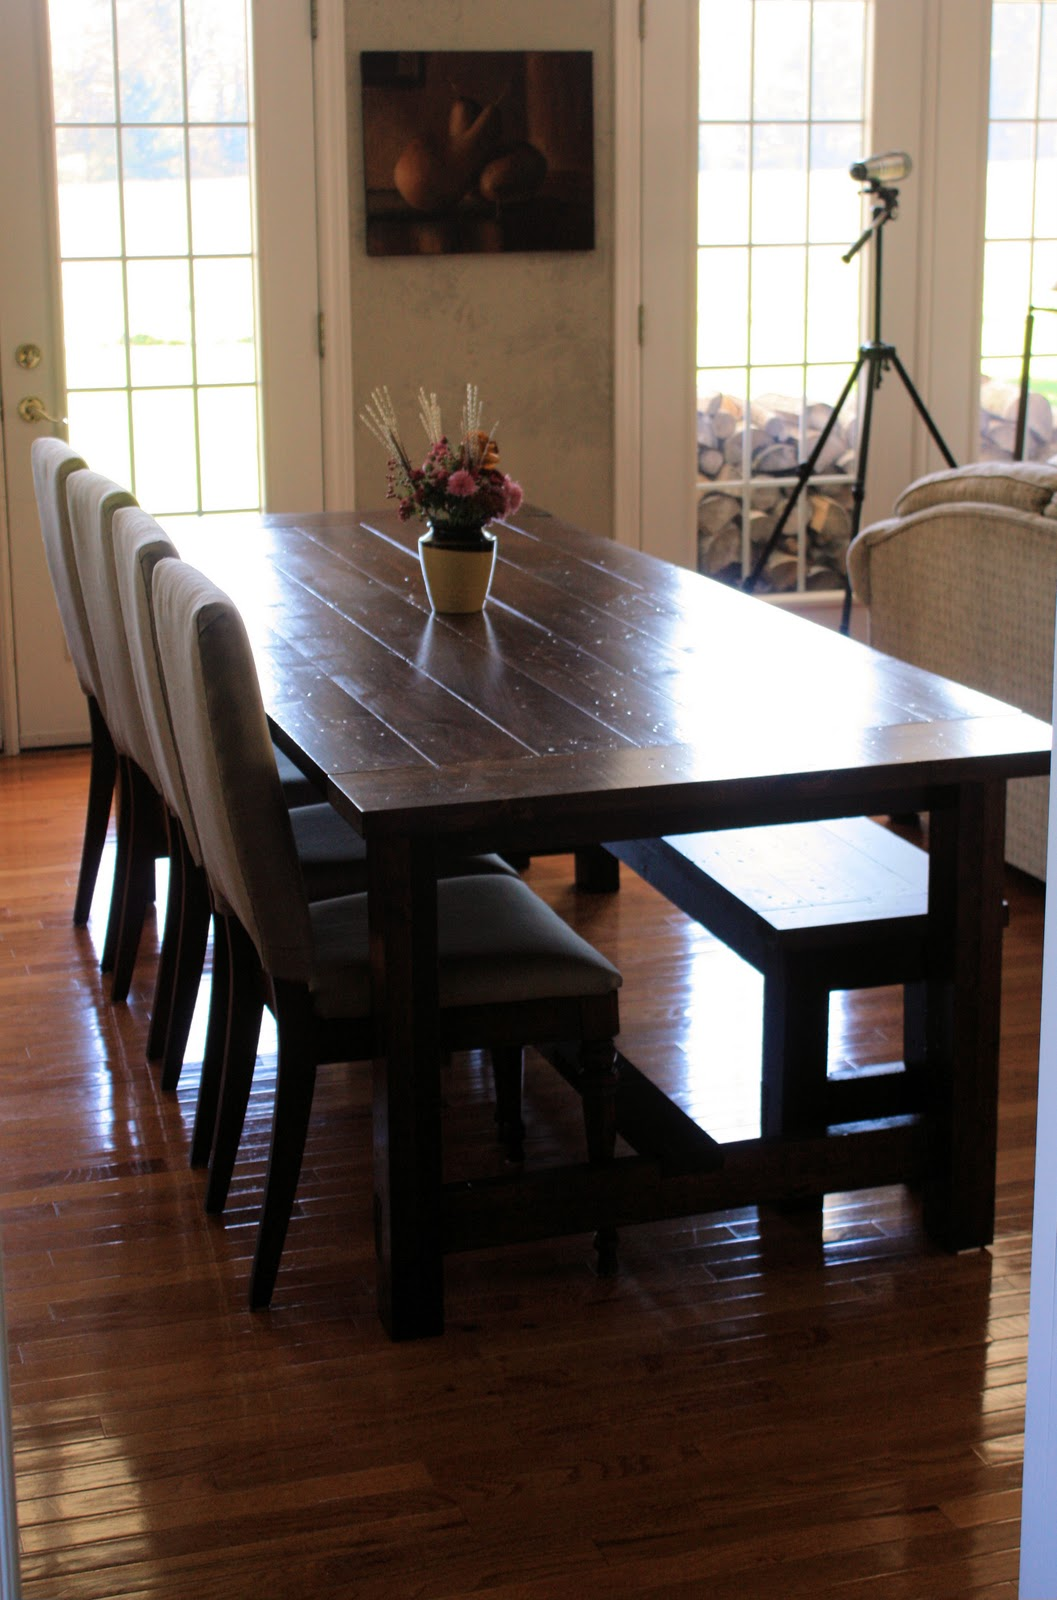 landlocked farmhouse dining table and bench. Black Bedroom Furniture Sets. Home Design Ideas